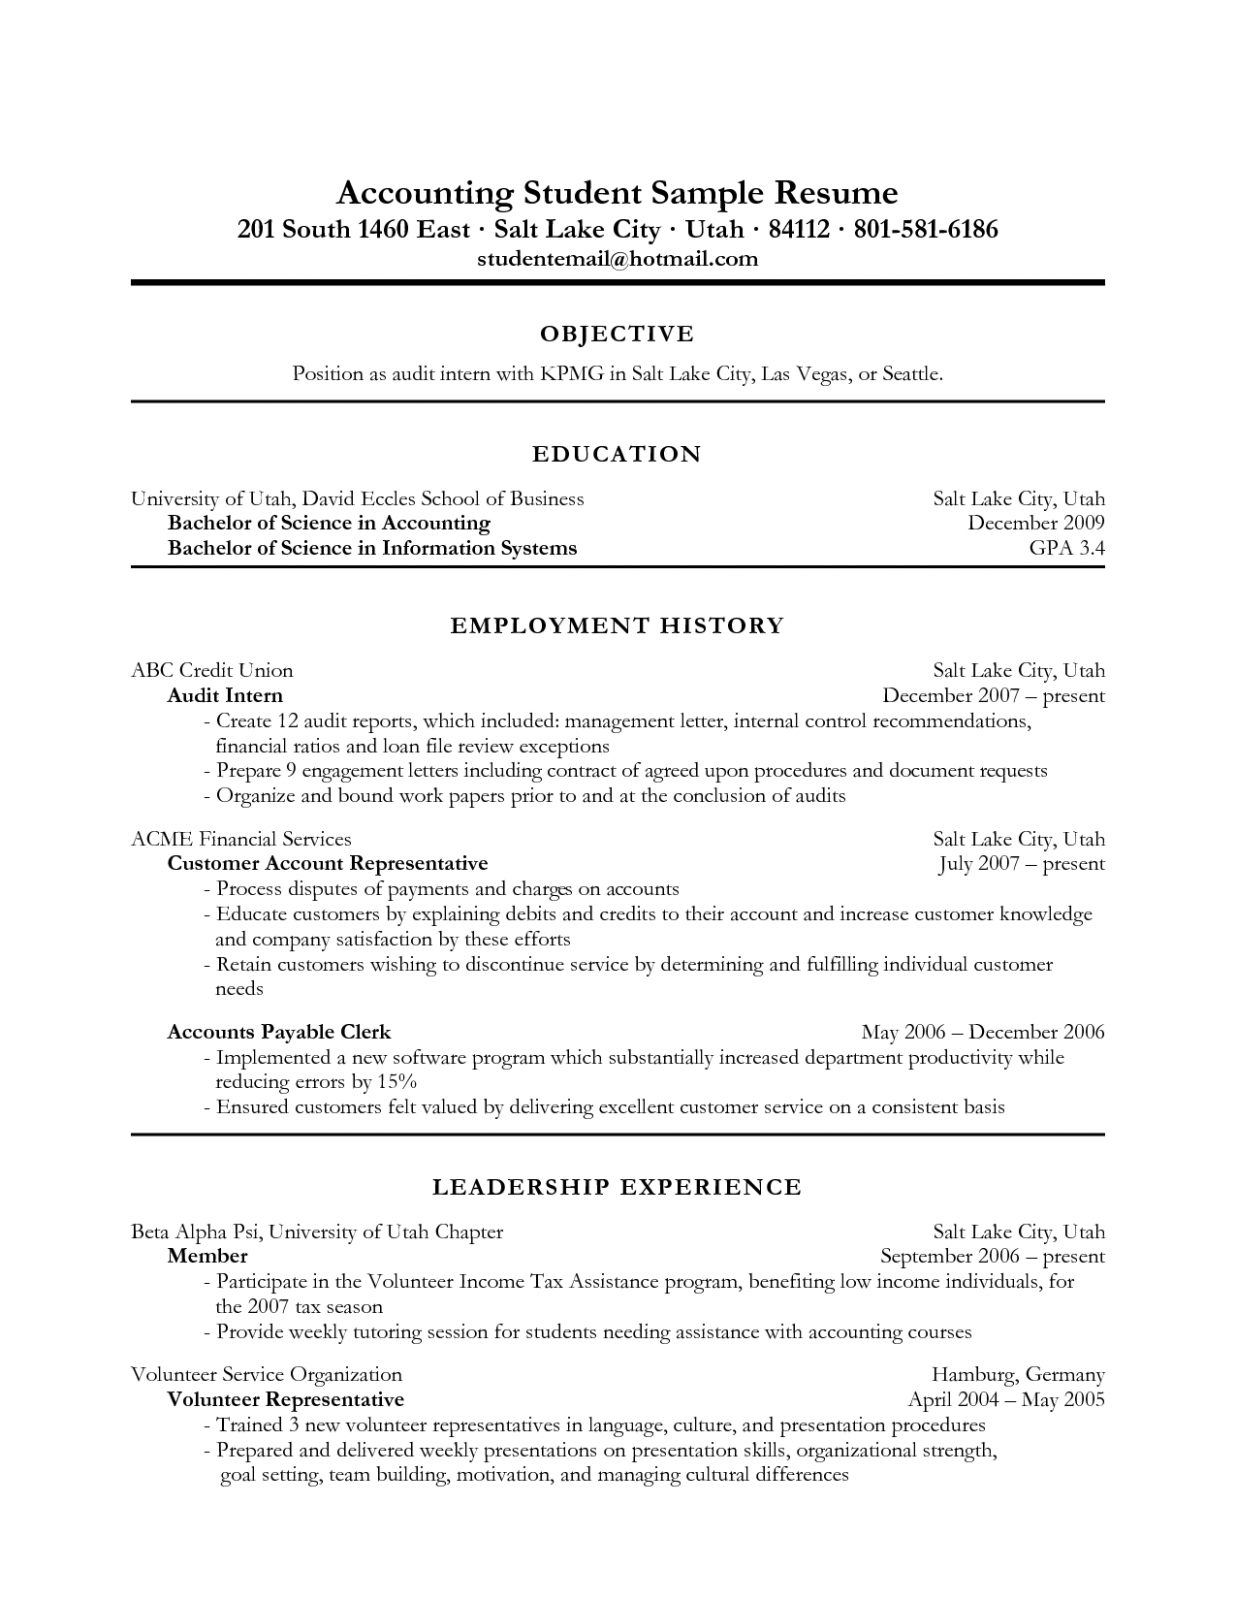 Career Objective For Marketing And Sales In 2021 Resume Objective Statement Examples Resume Objective Examples Accounting Student